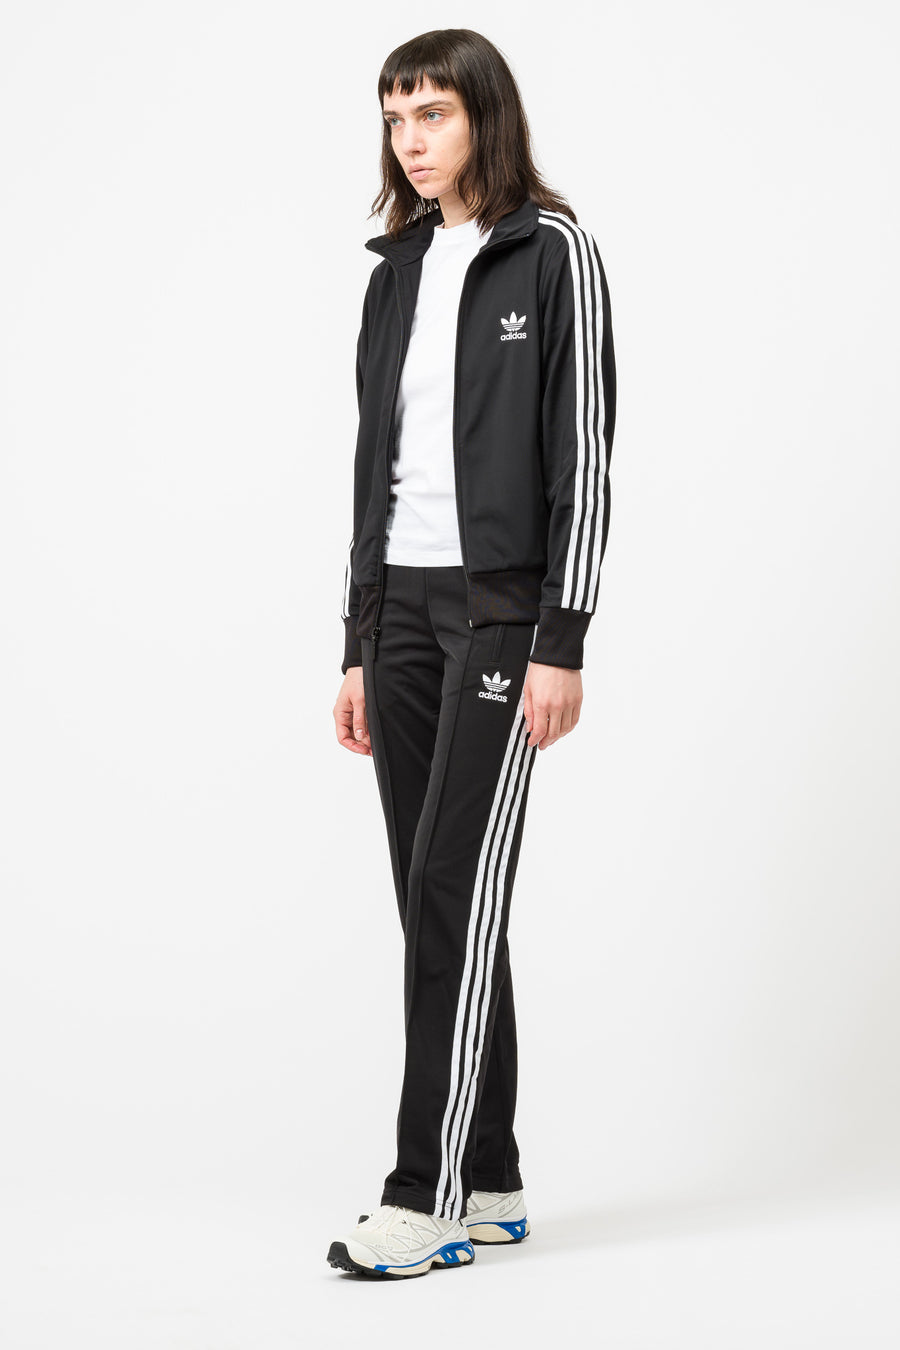 adidas Firebird Track Top in Black - Notre